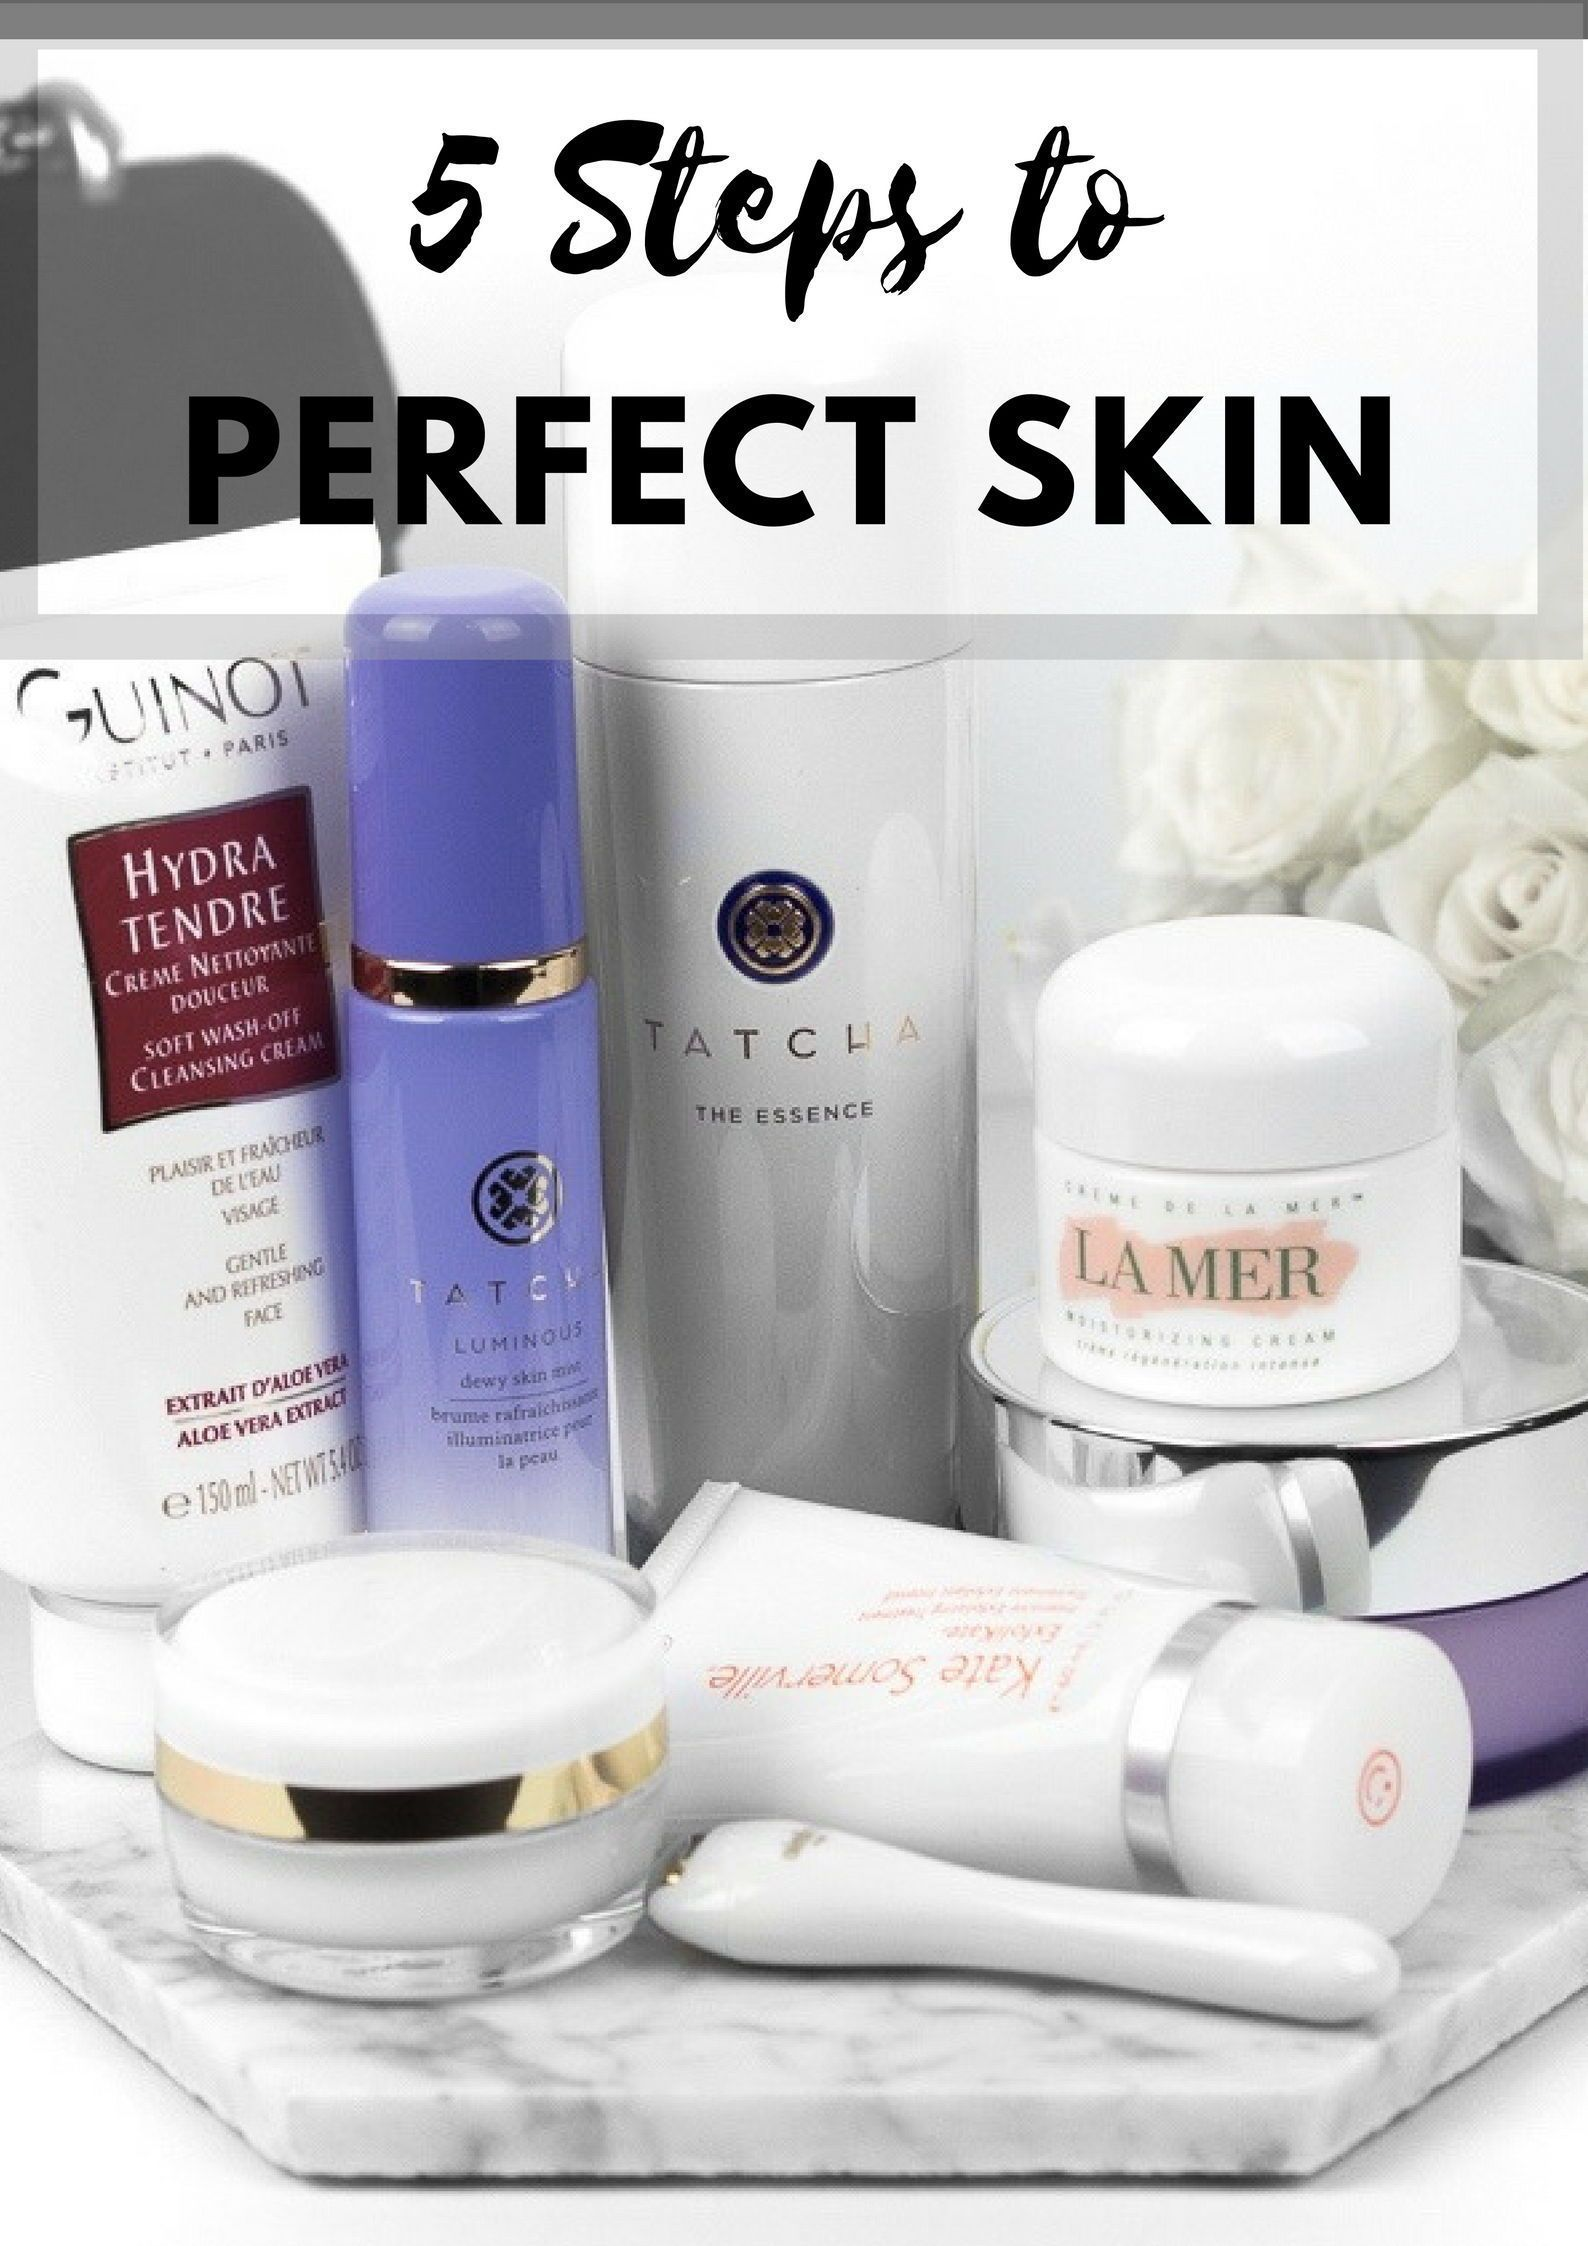 Best Skin Care Cream Pin By Fernando On Cara Pinterest Skin Care Best Skincare